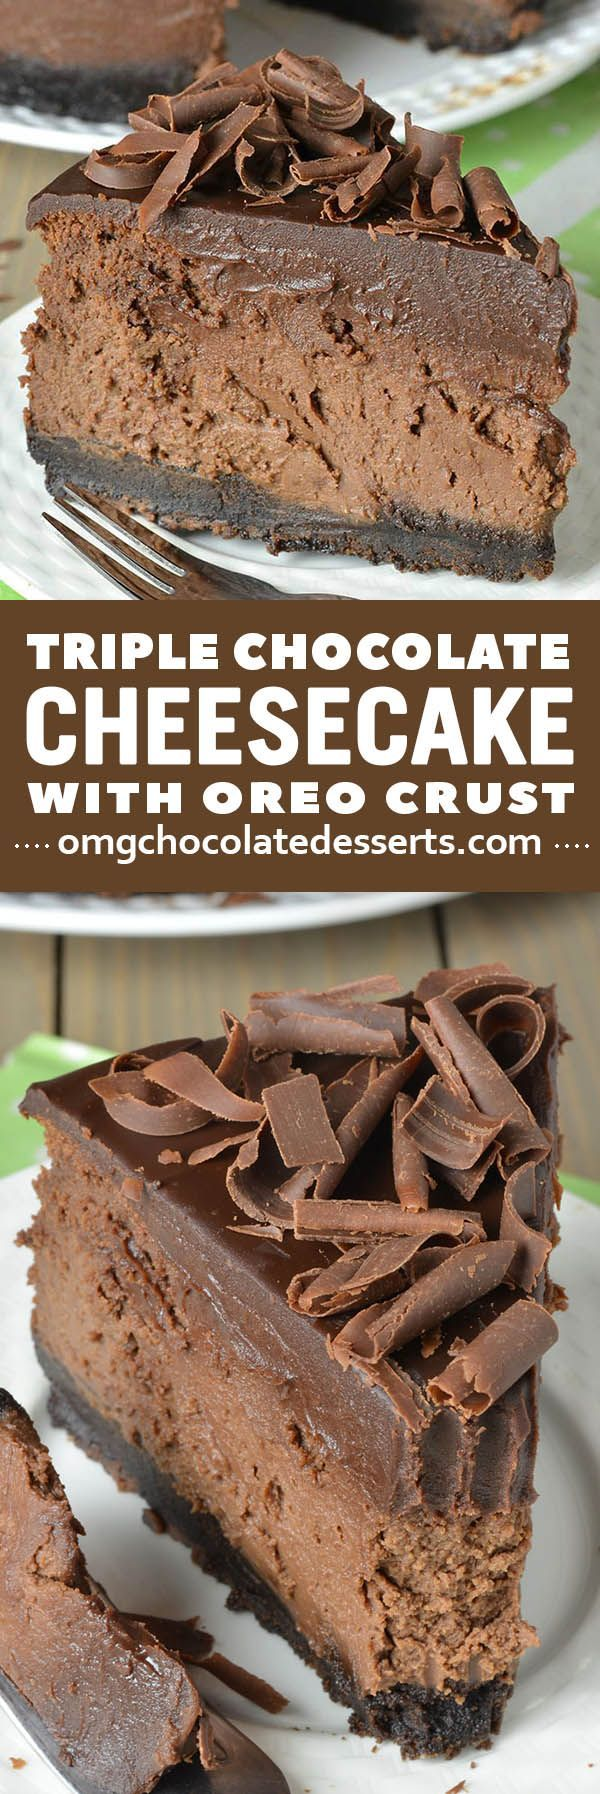 Triple Chocolate Cheesecake with Oreo Crust #dessertfoodrecipes